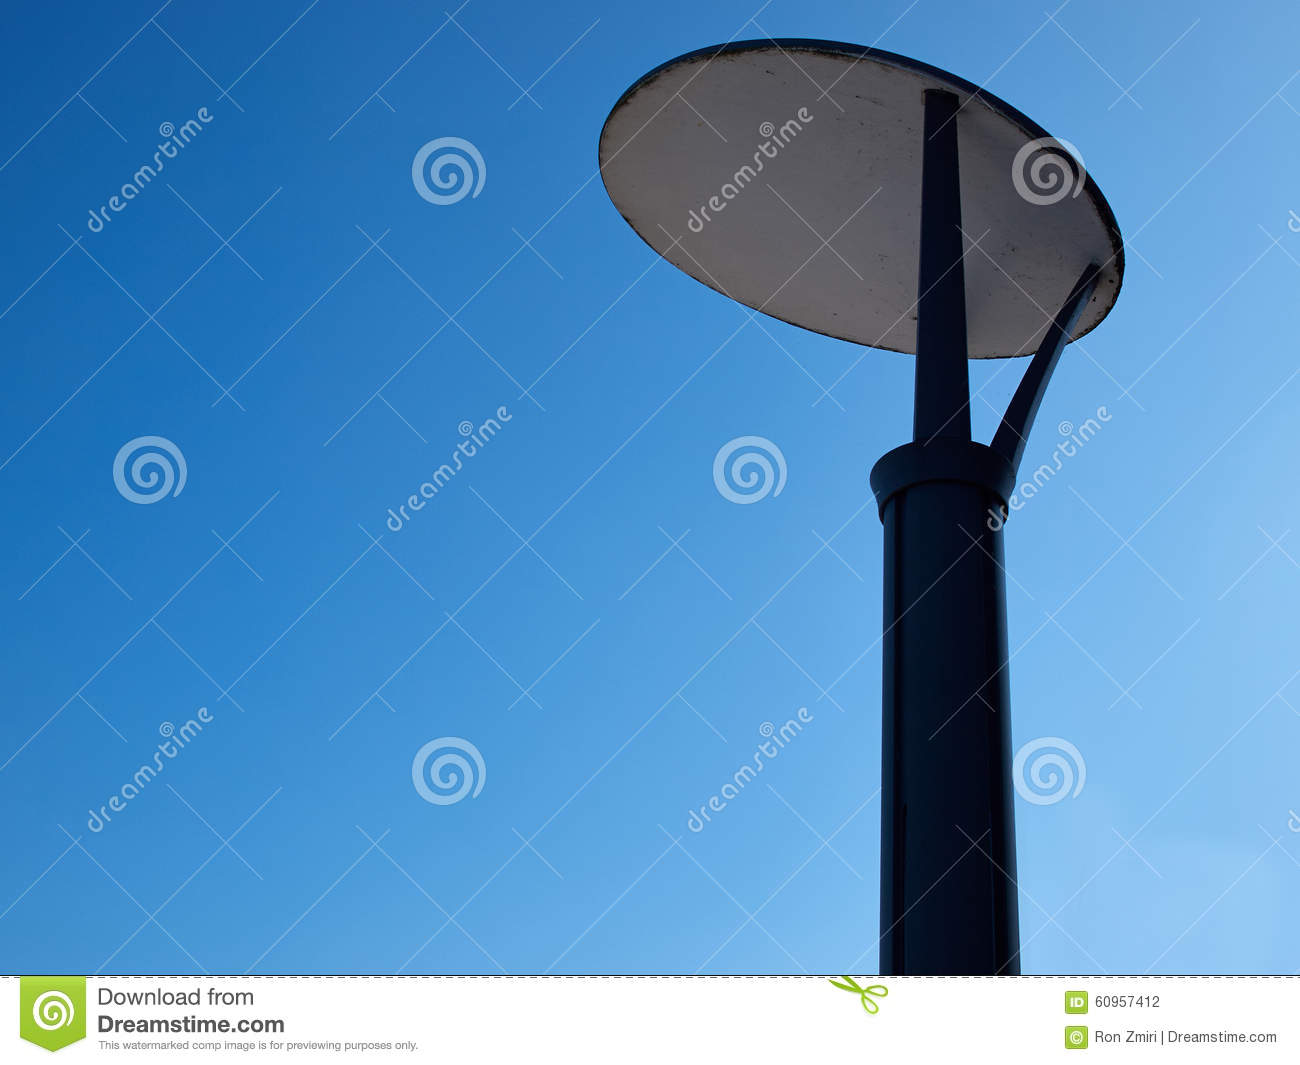 Modern Design Street Light Lamp Post Pole Stock Photo - Image of ... for Street Lamp Post Design  17lplyp